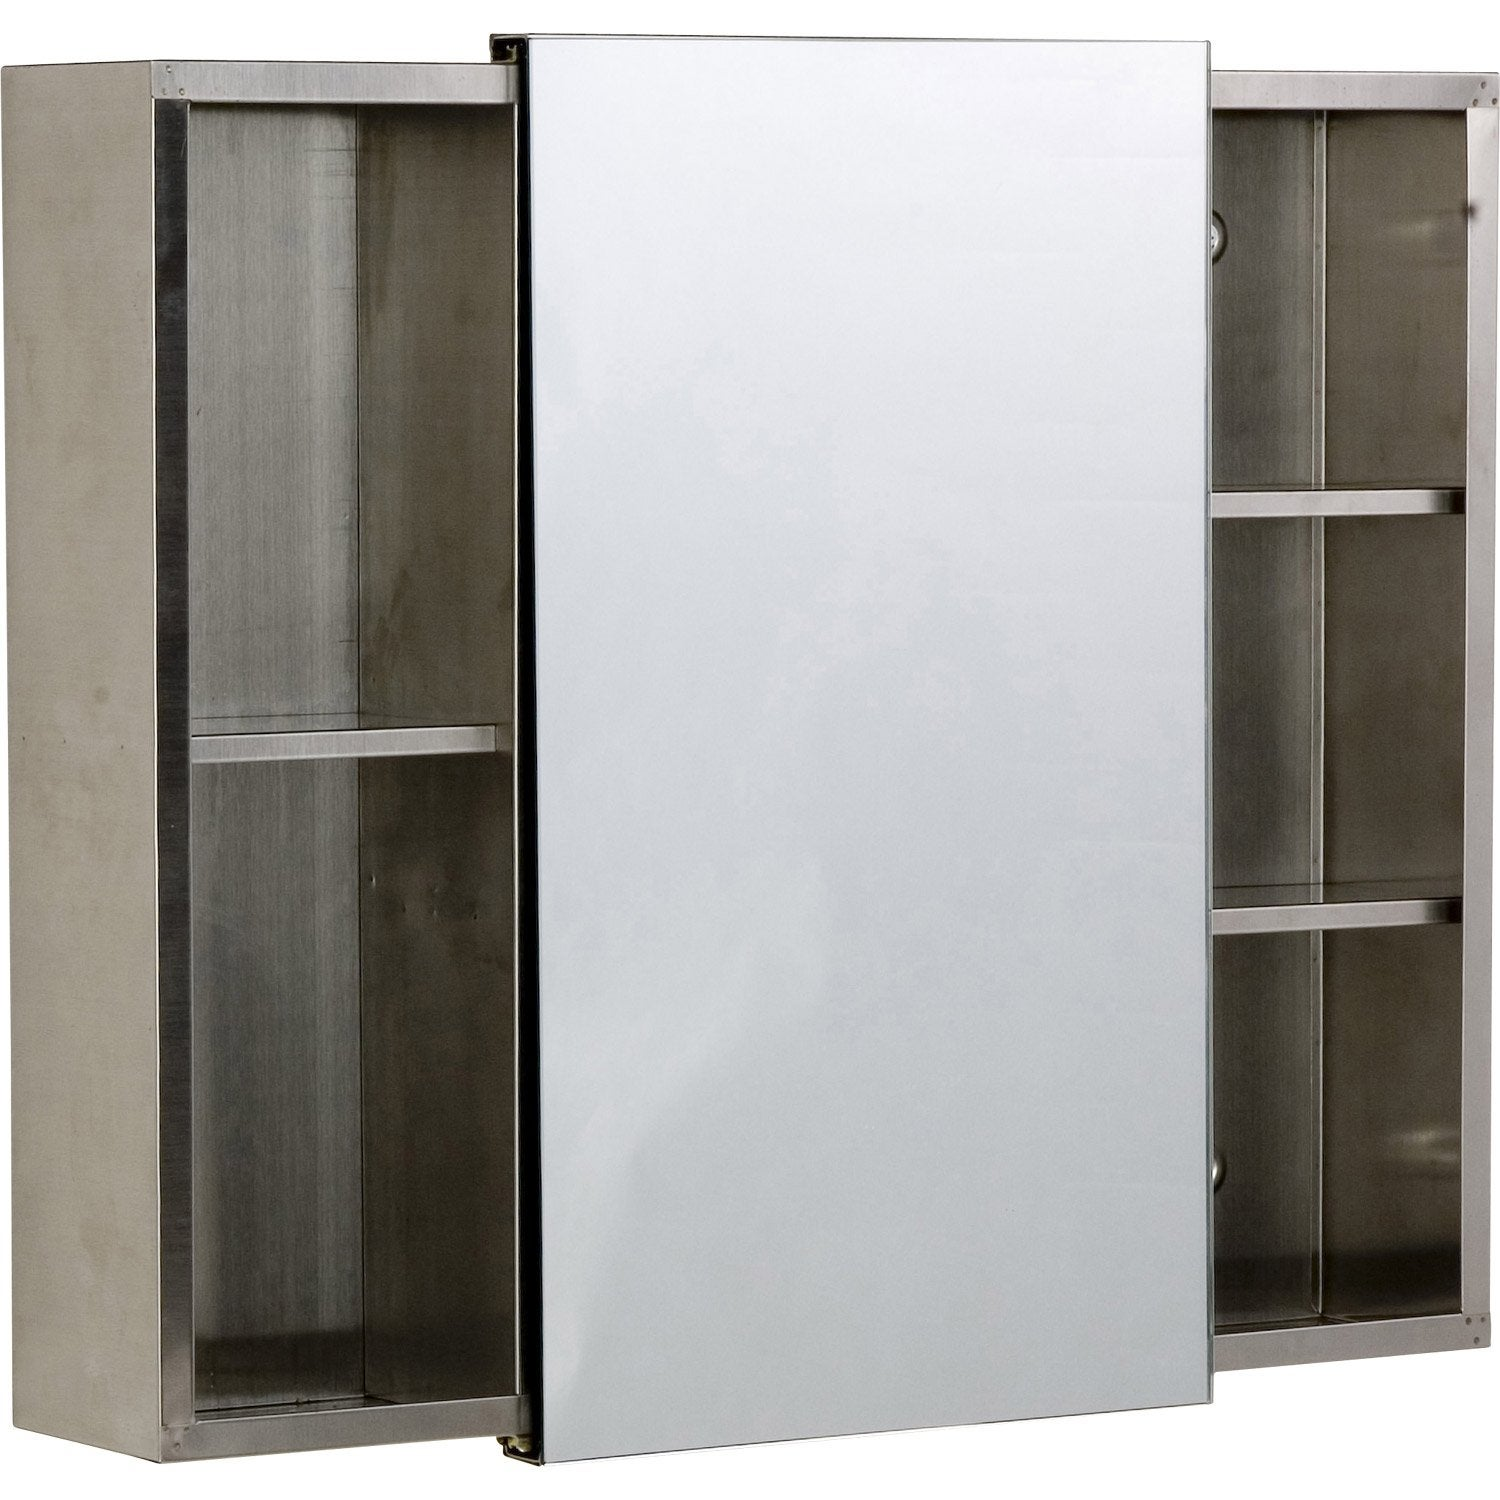 Armoire de toilette gris cm sensea krom leroy merlin for Meuble de toilette leroy merlin